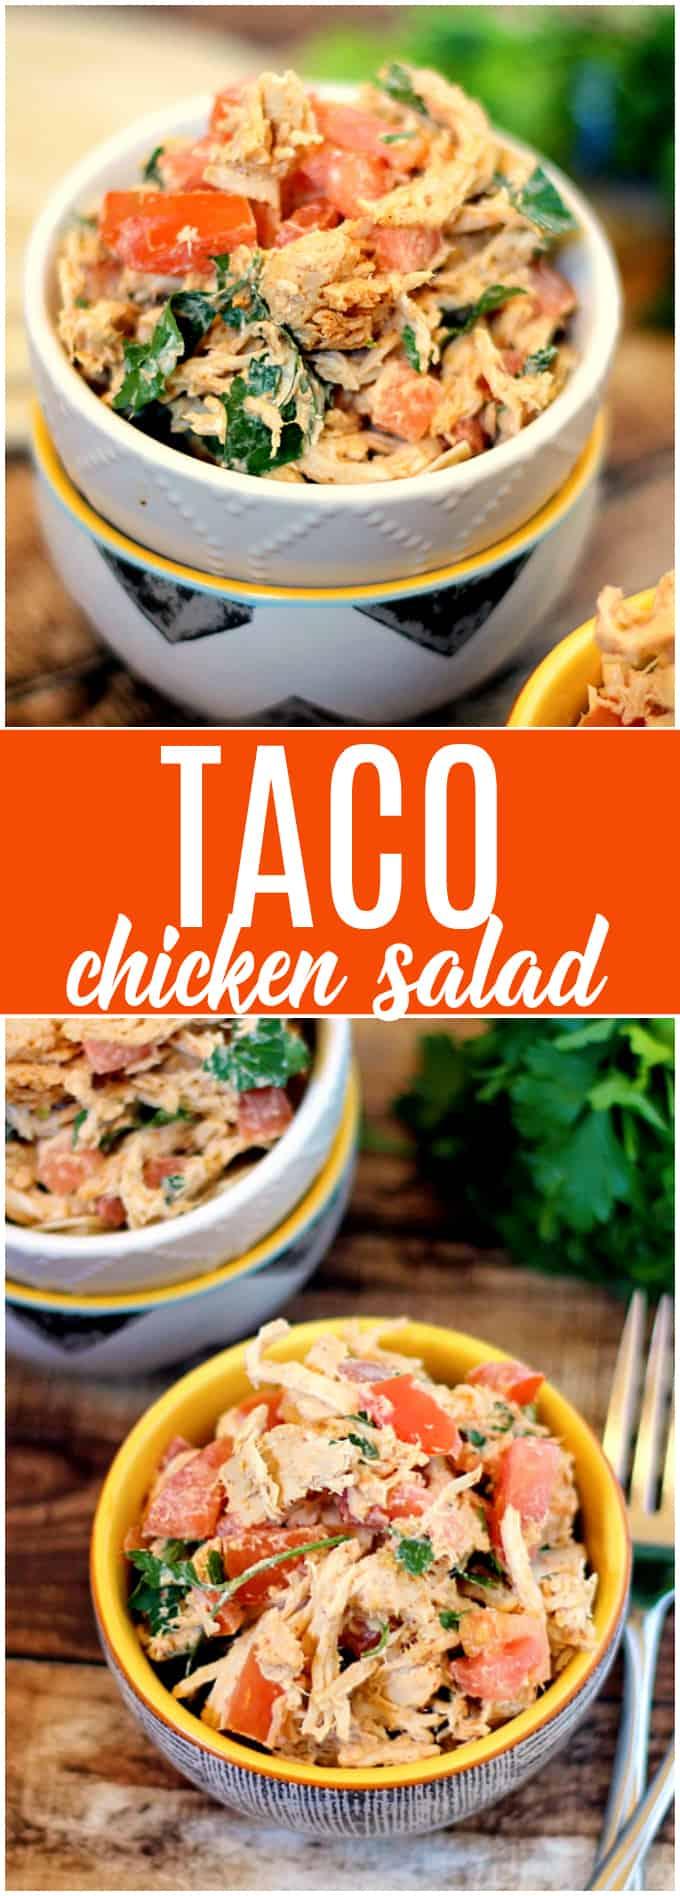 Taco Chicken Salad - This salad recipe is full of fresh (and hot!) ingredients like jalapenos, chili powder, cumin, cilantro and more.